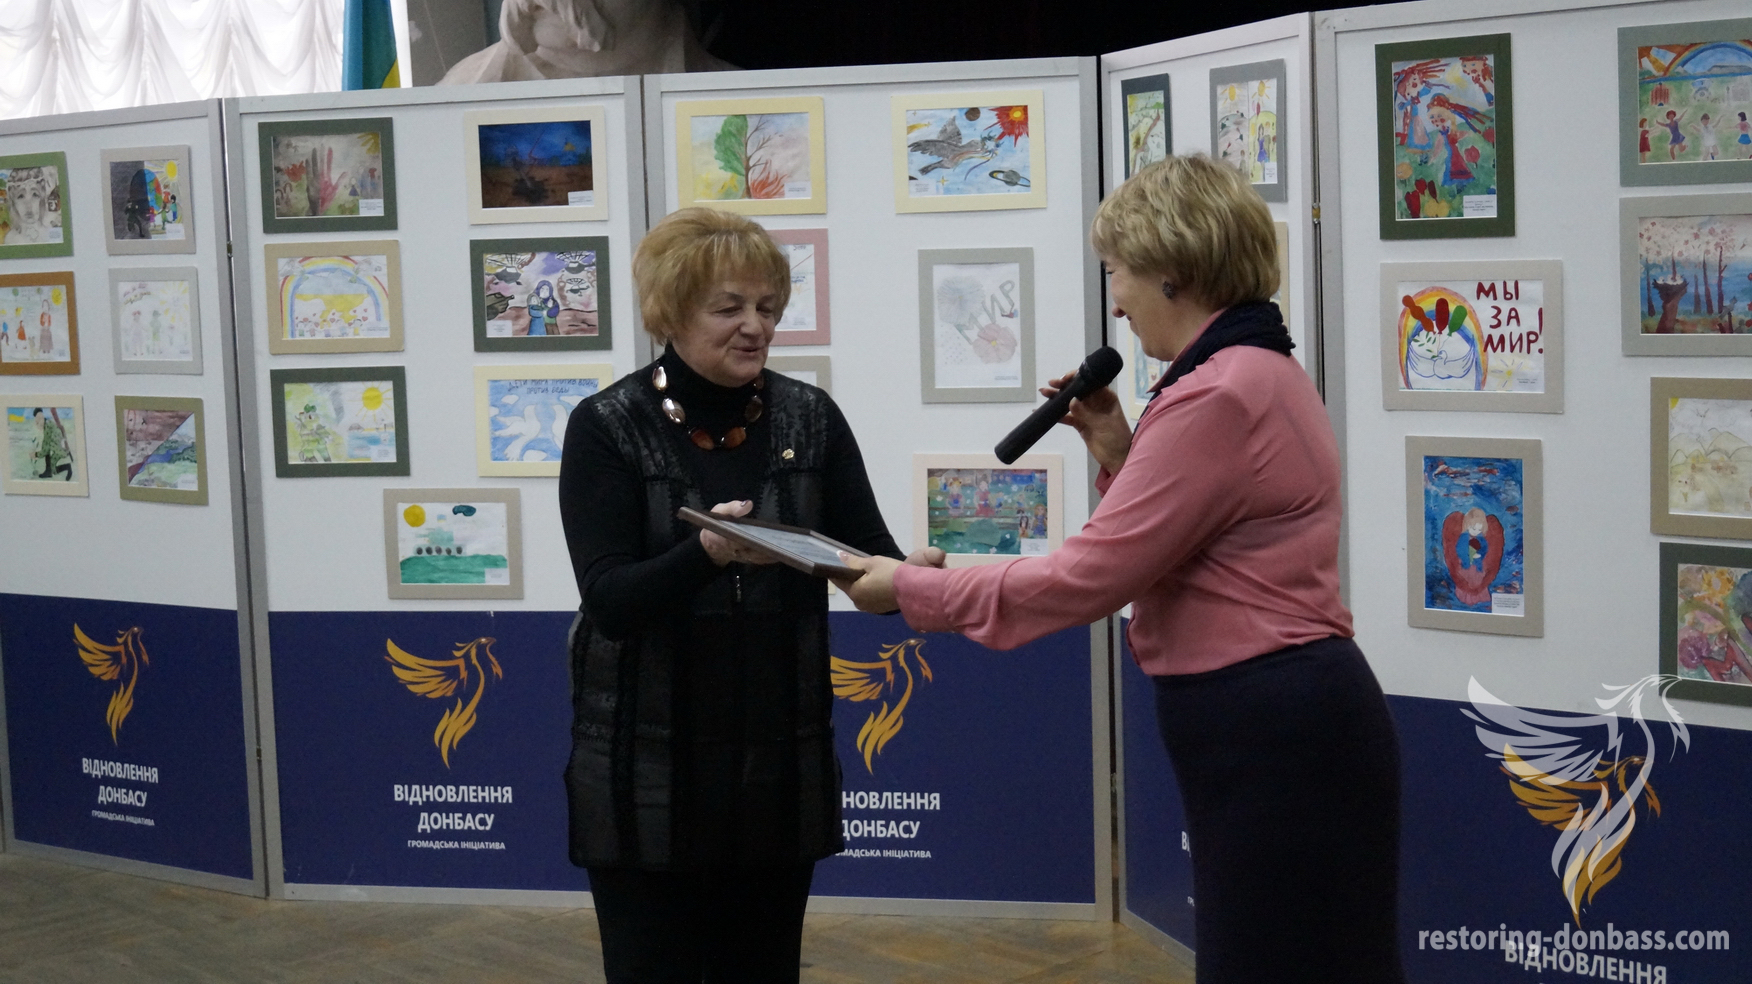 Volunteers of Restoring Donbas gave the diploma to director of the art school Elena Avramenko